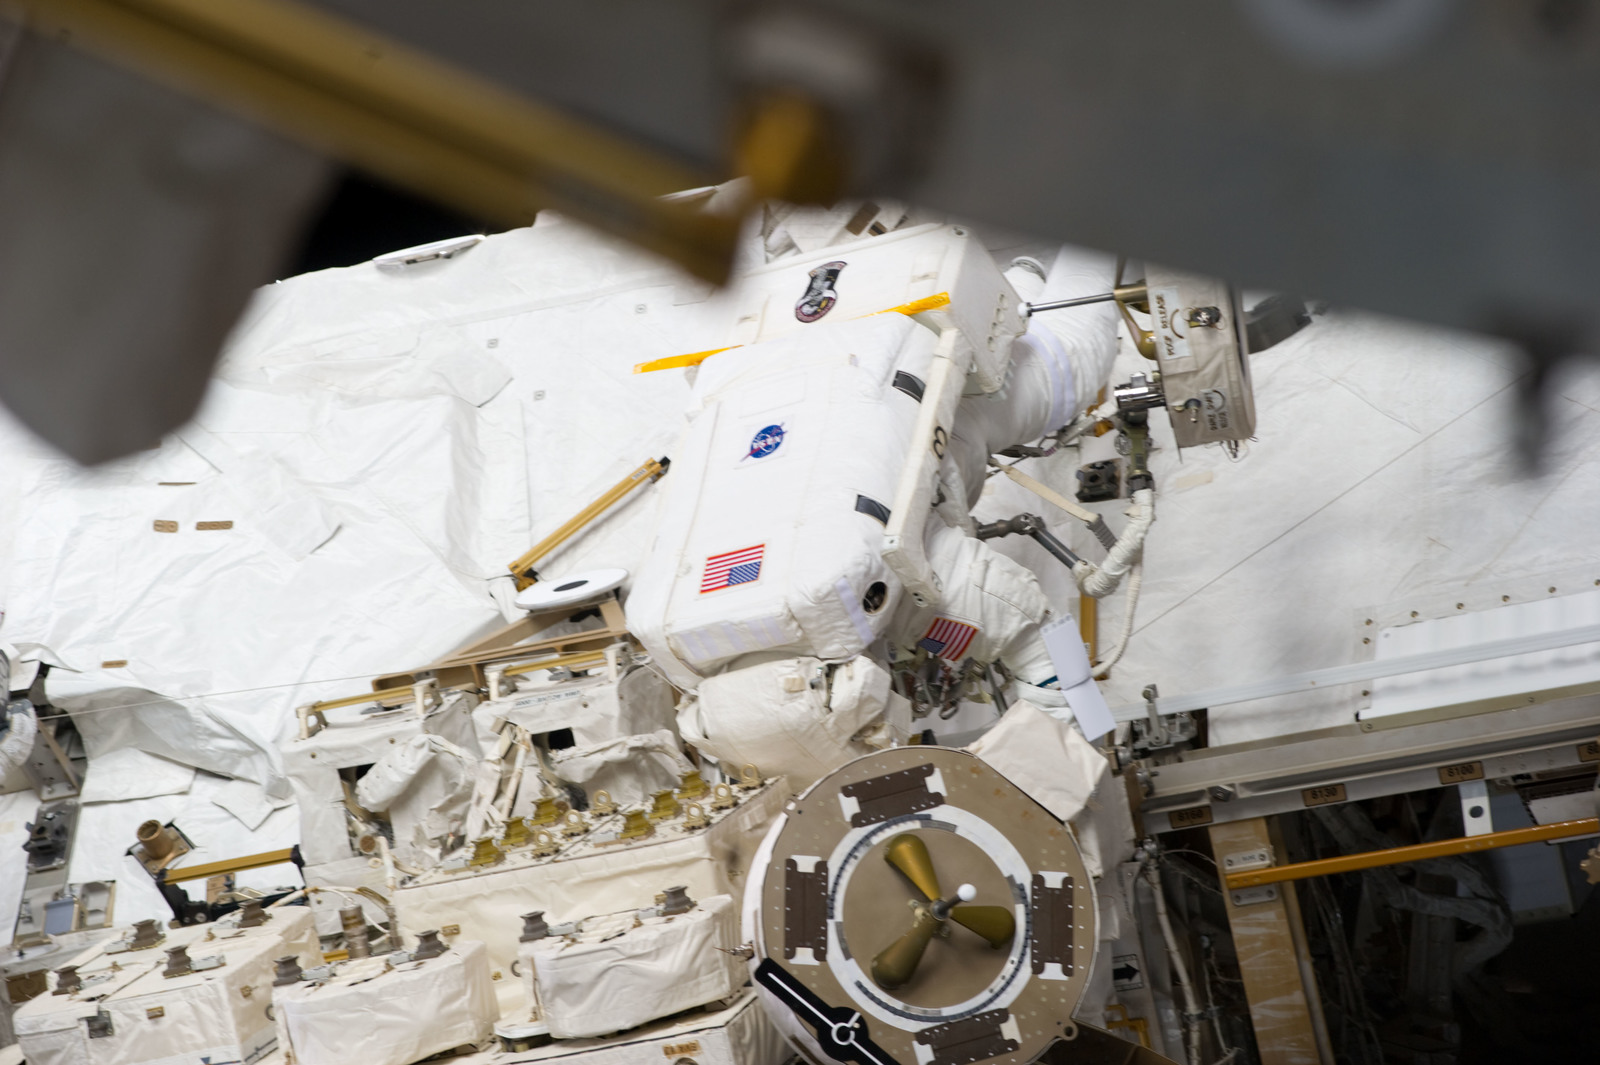 S134E009643 - STS-134 - View of STS-134 MS Fincke during EVA-4